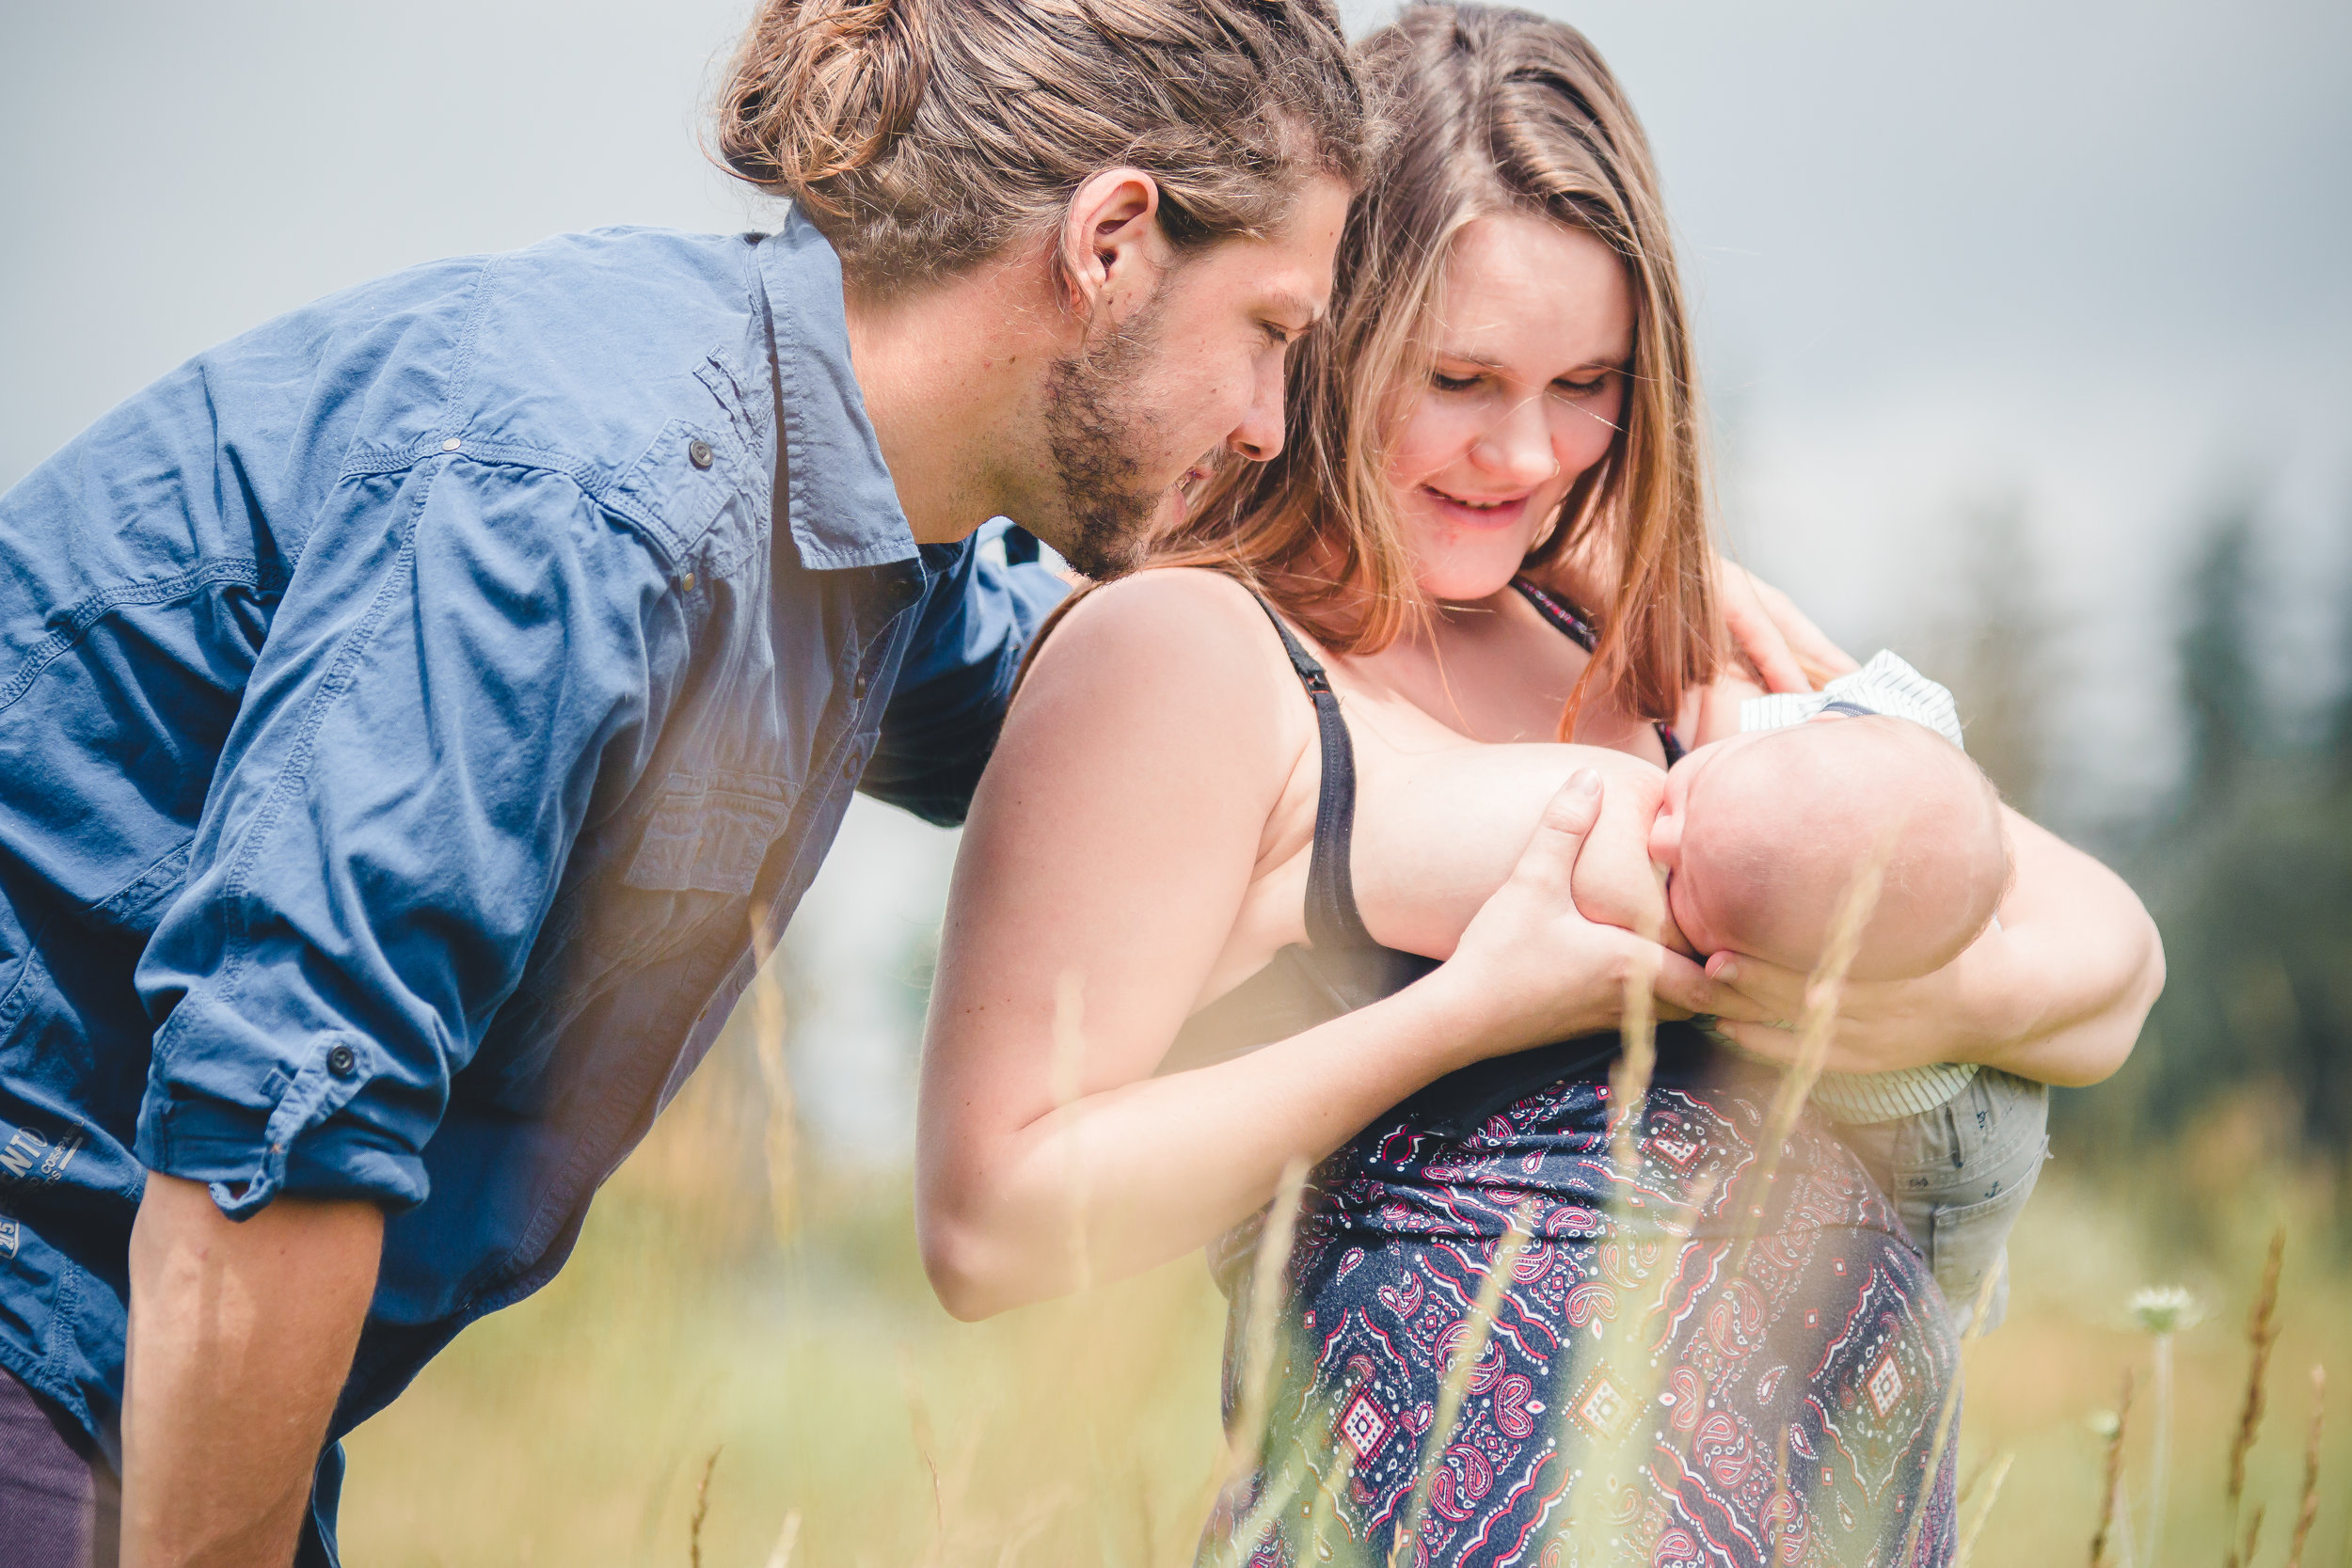 Barrie Newborn Photography- Barrie Birthing Photography- Barrie Maternity Photography- Nursing Photography